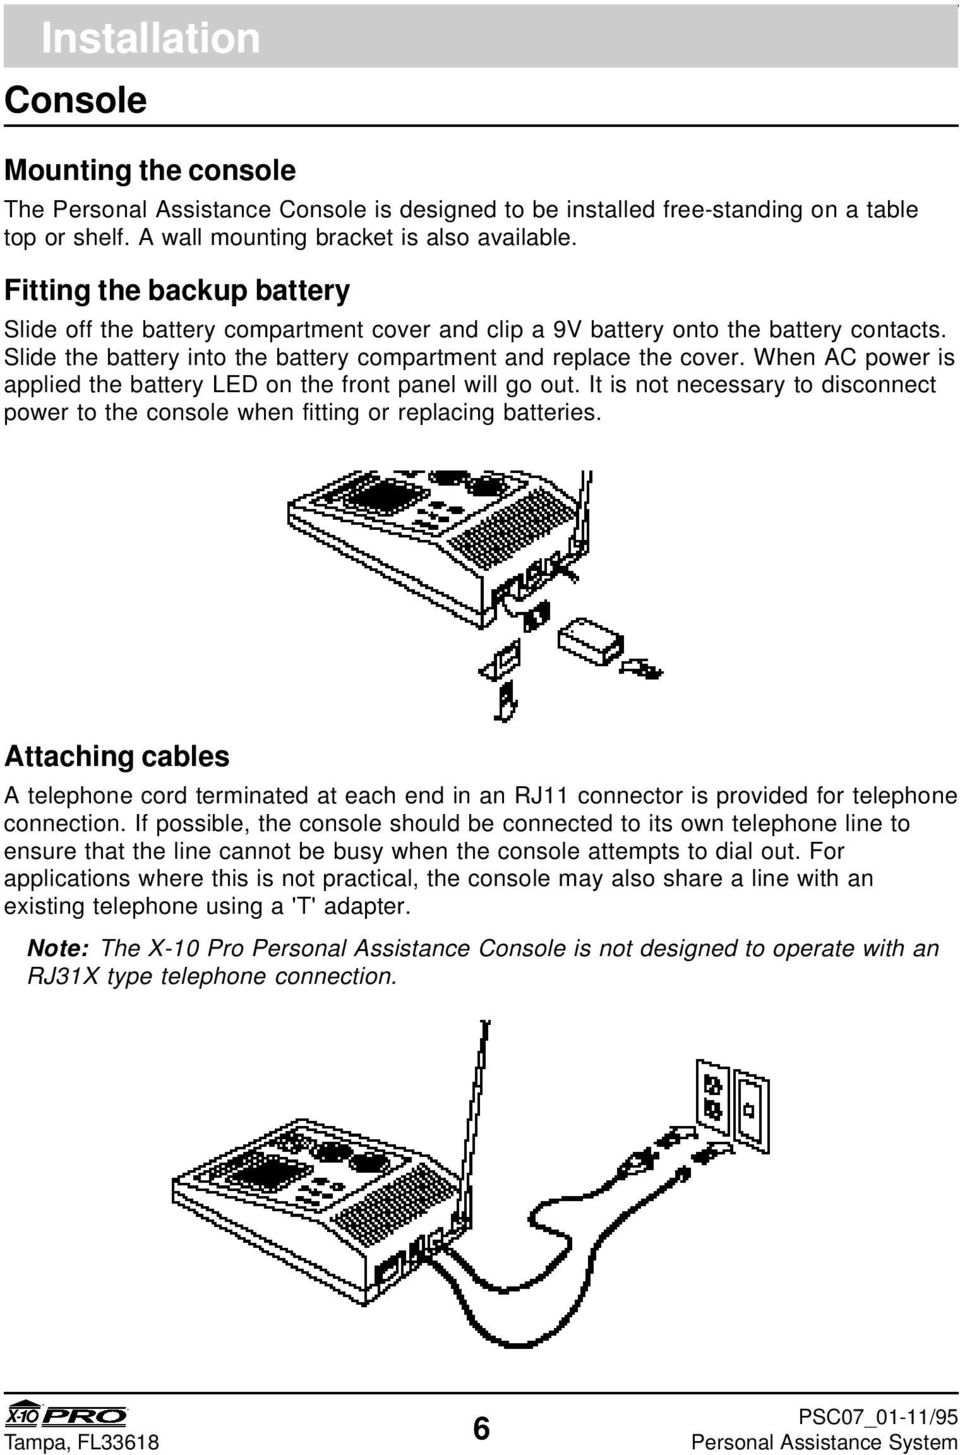 When AC power is applied the battery LED on the front panel will go out. It is not necessary to disconnect power to the console when fitting or replacing batteries.